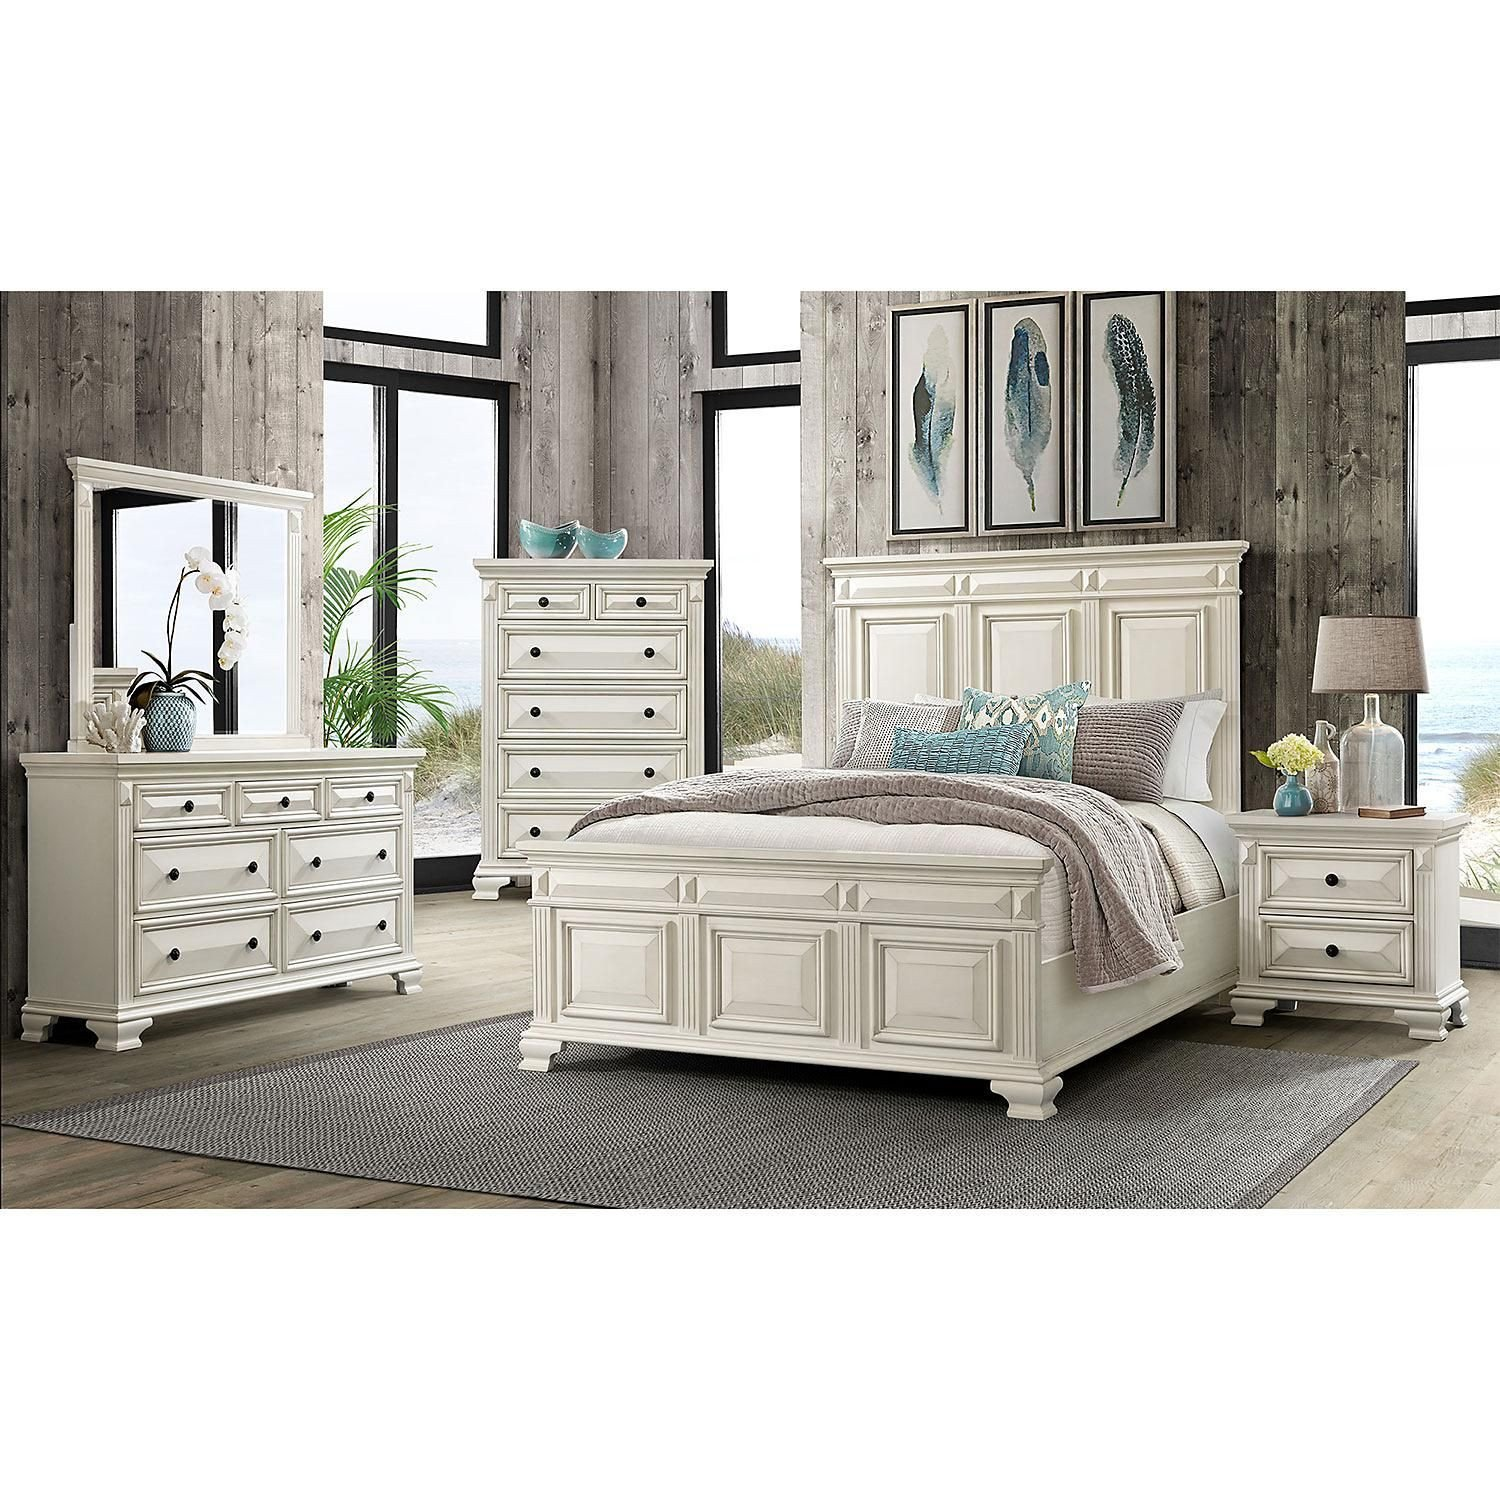 Complete Queen Bedroom Set Luxury $1599 00 society Den Trent Panel 6 Piece King Bedroom Set